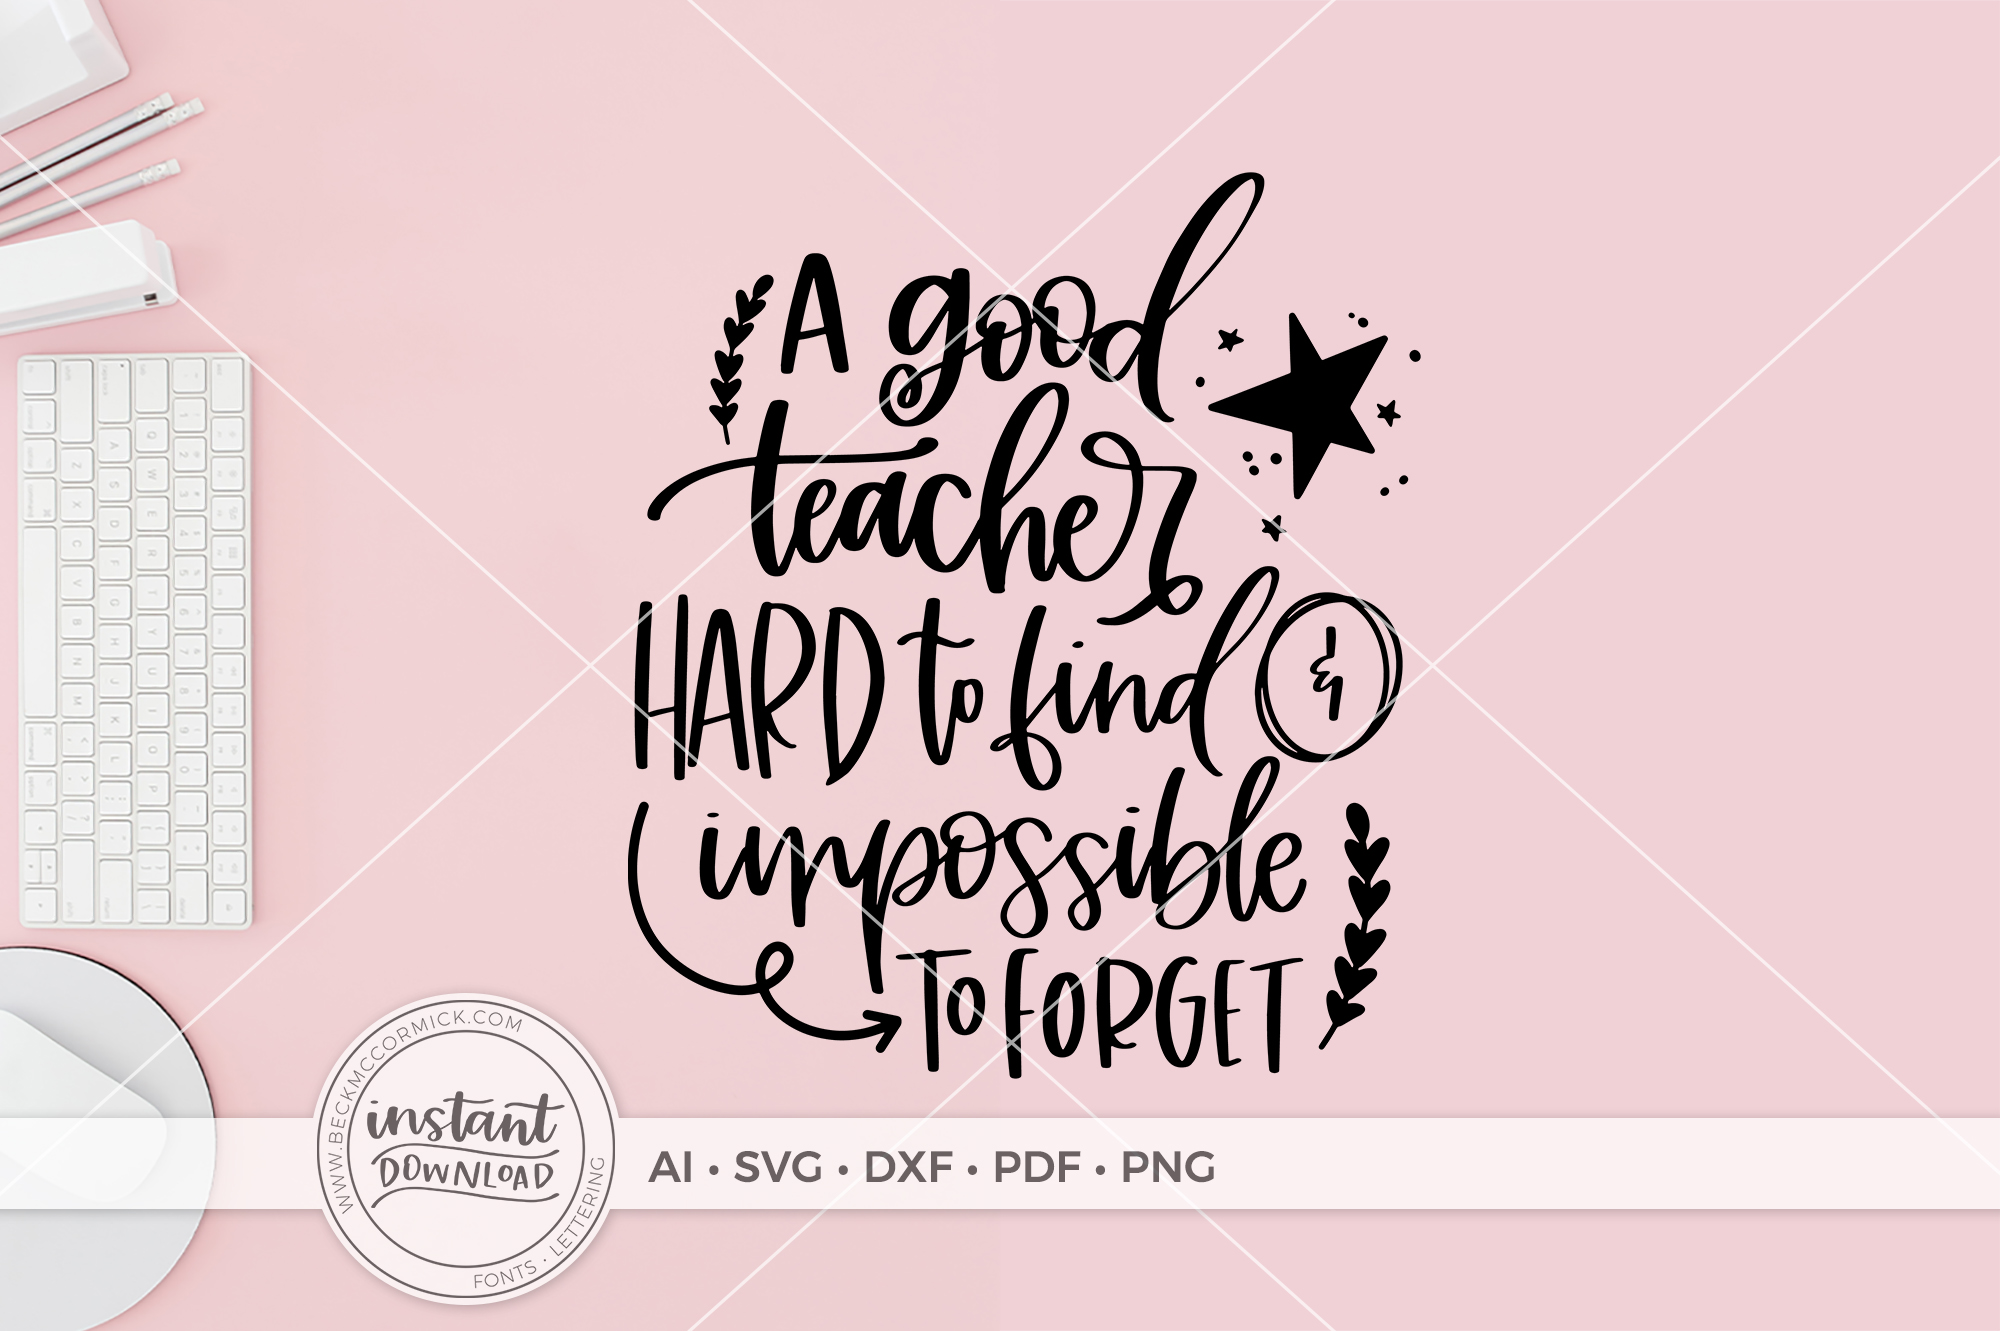 Download Free A Good Teacher Is Hard To Find Graphic By Beckmccormick for Cricut Explore, Silhouette and other cutting machines.